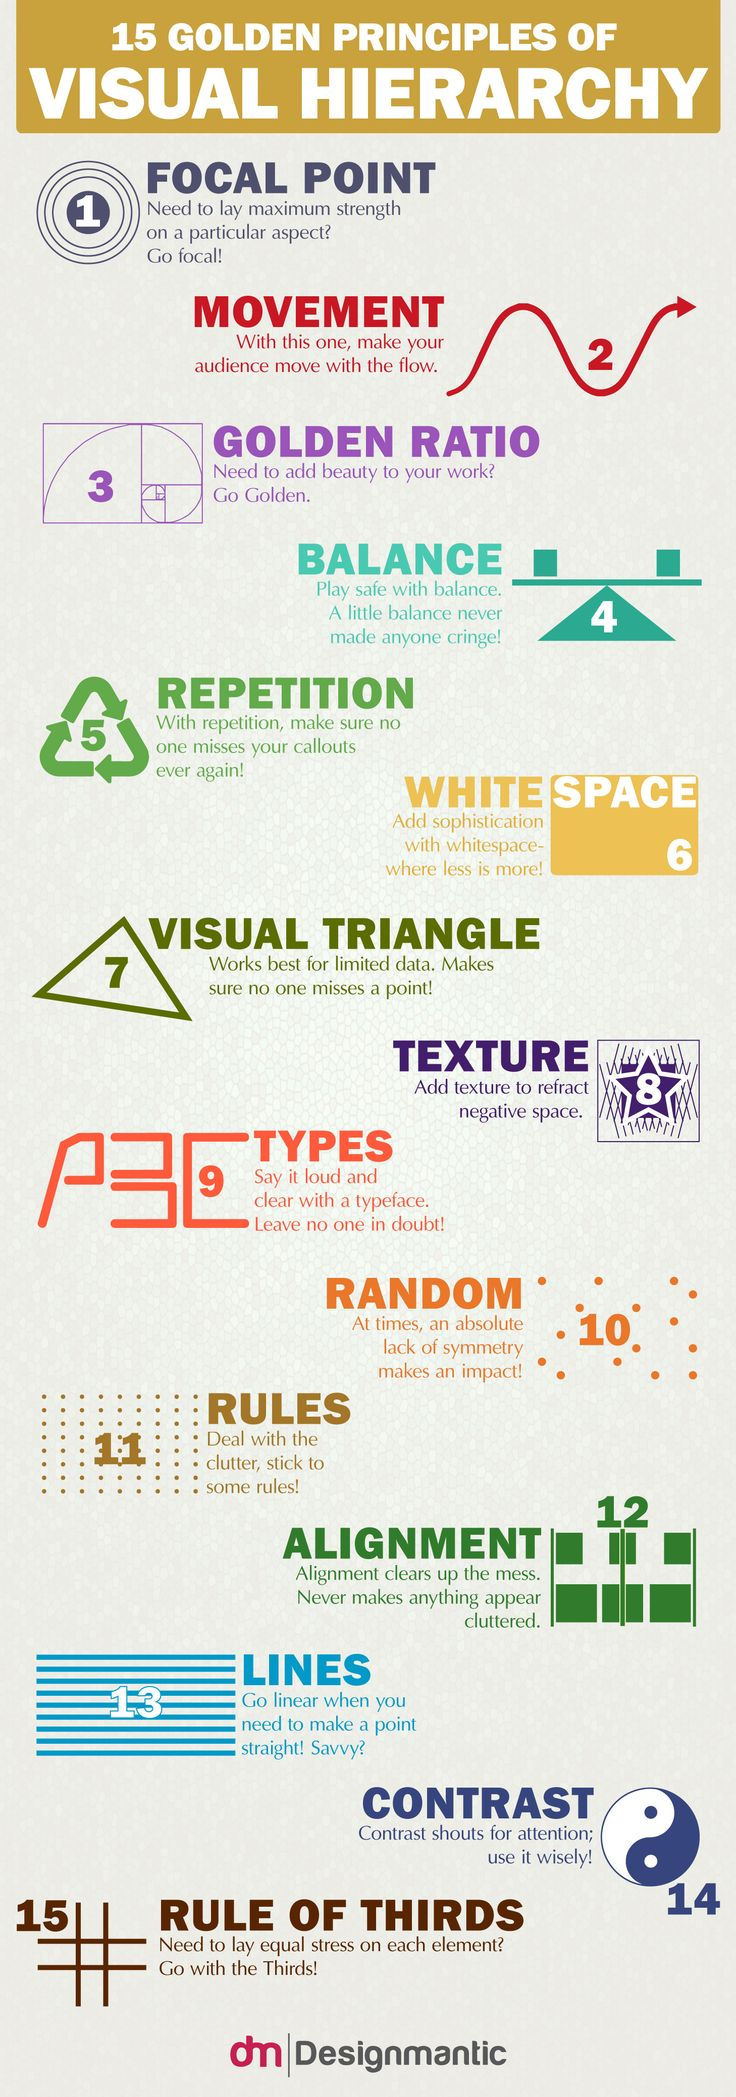 Infographic: 15 Golden Principles of Visual Hierarchy #infographic - October 15, 2014